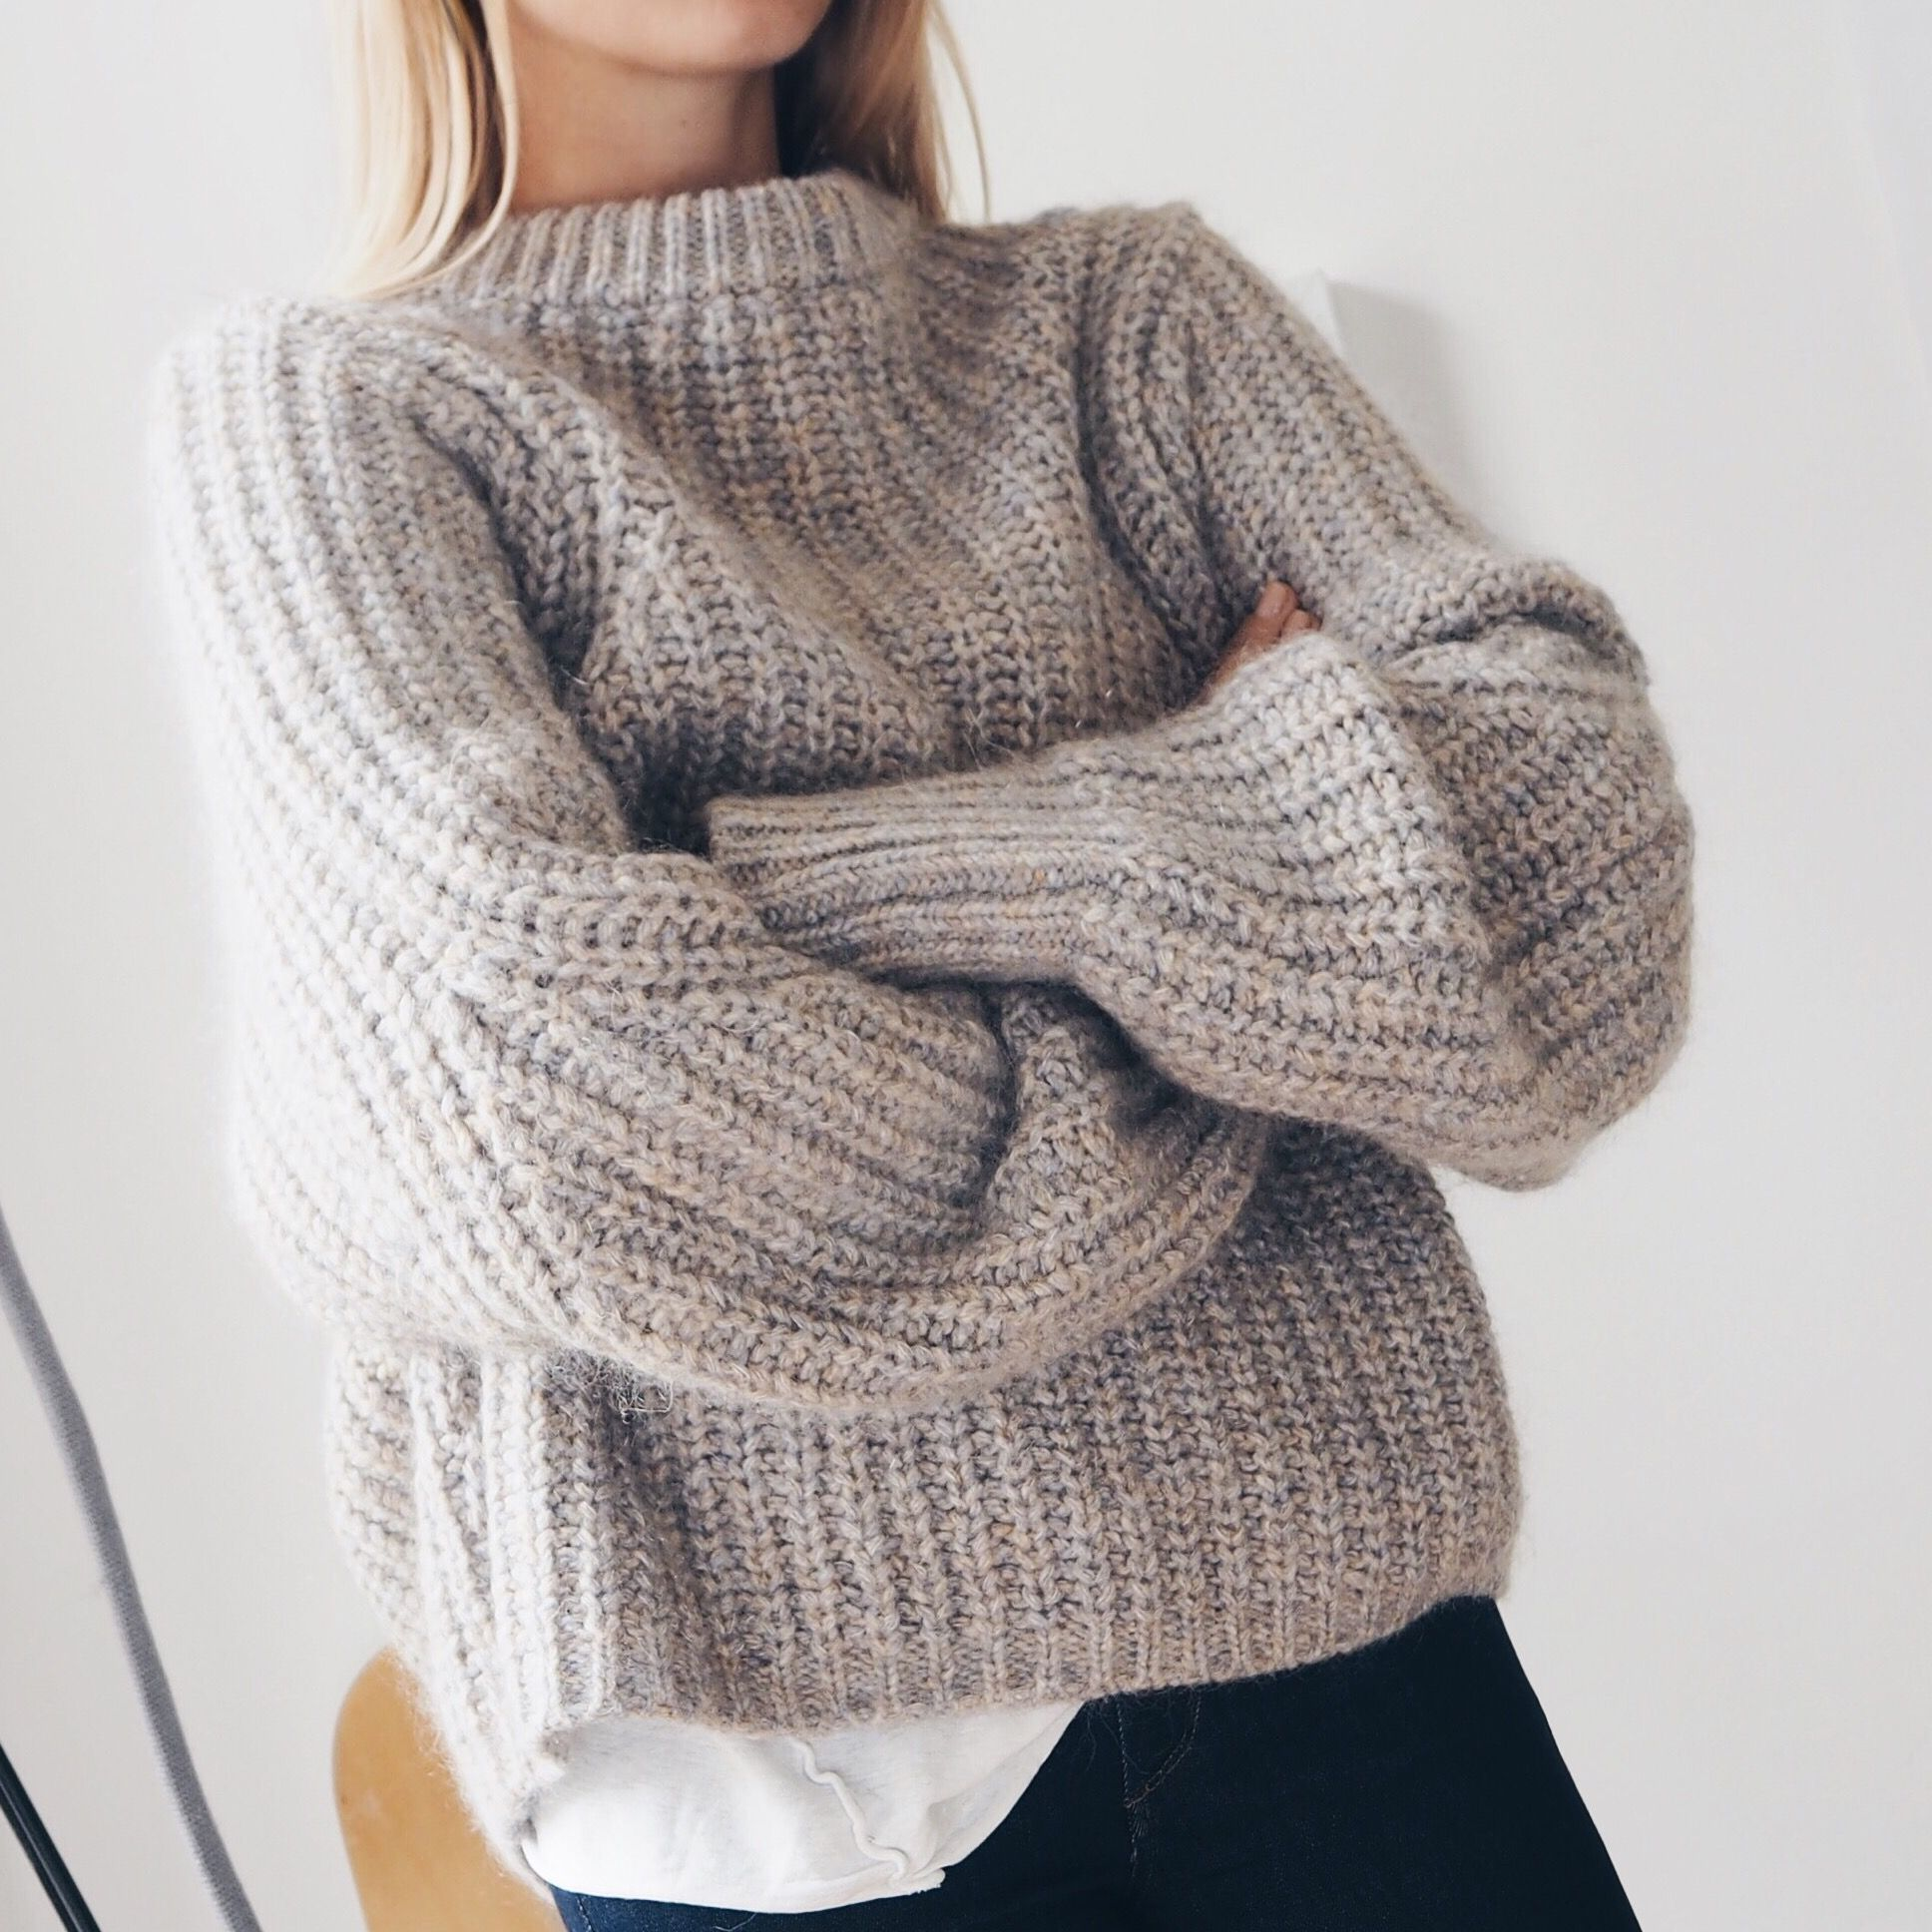 Pin by · chey · on || sweater weather || | Pinterest | Knit ...